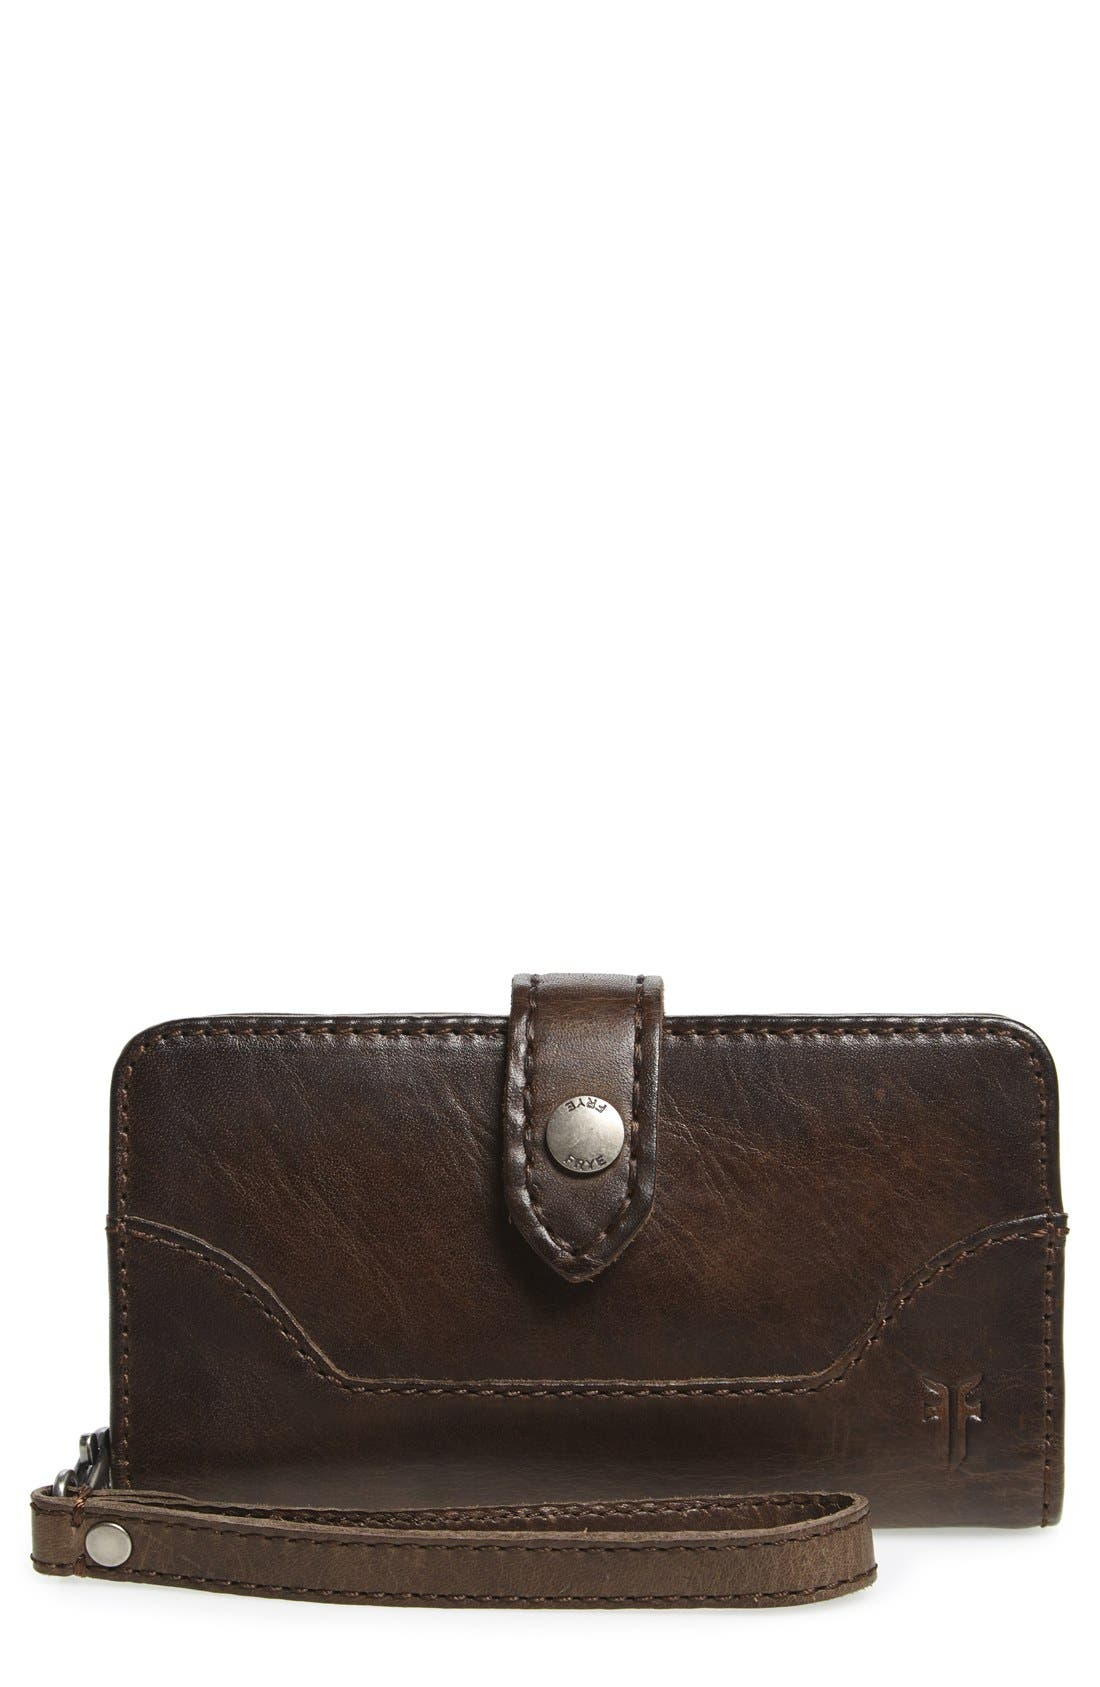 'Melissa' Leather Phone Wallet,                         Main,                         color, 020